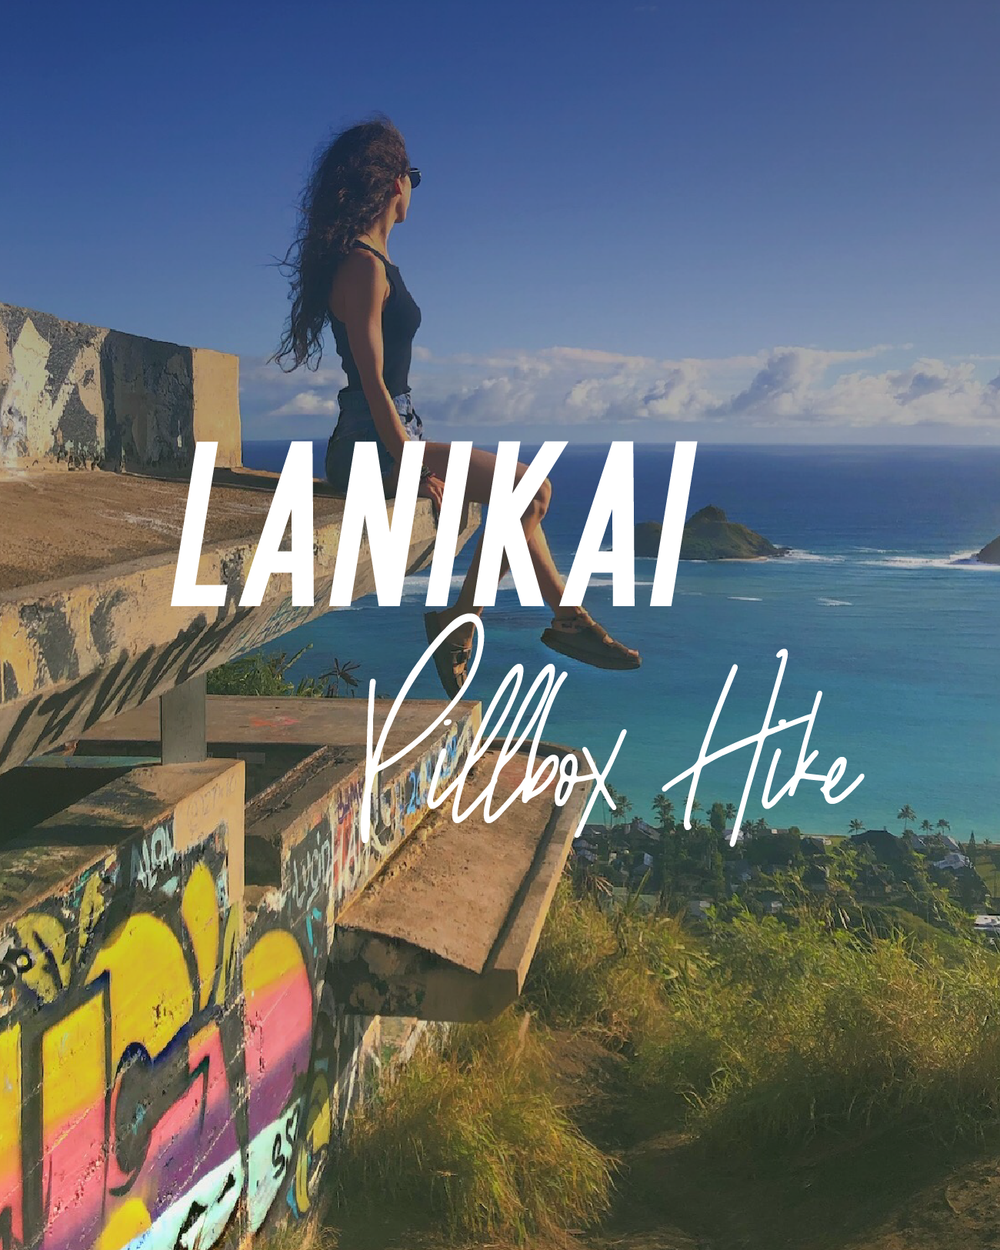 Lanikai Pillbox Hike, Oahu Hawaii